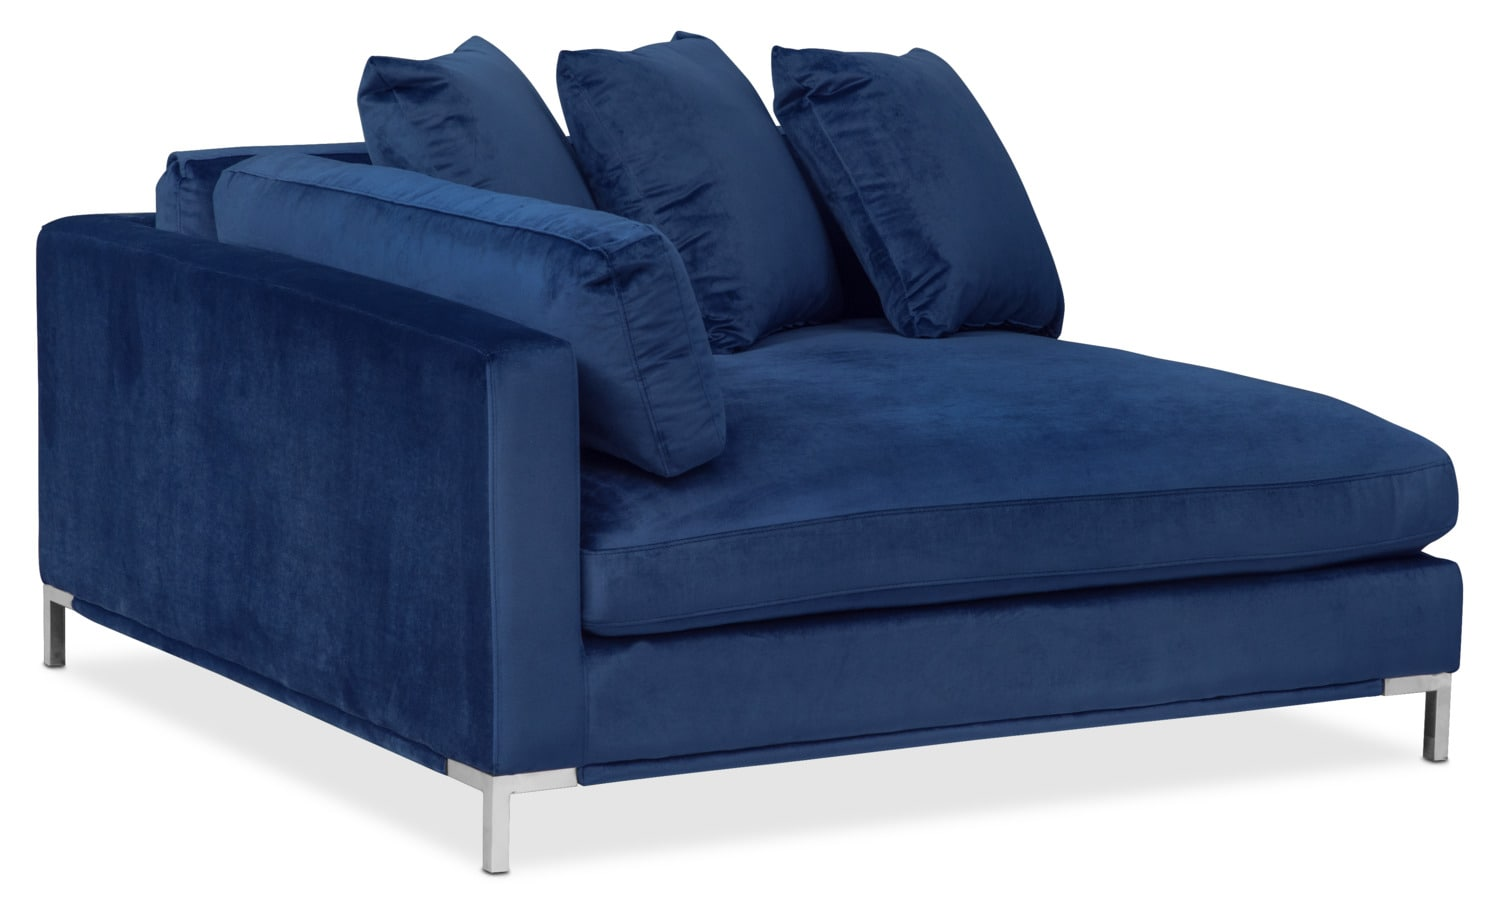 Moda 3 piece sectional with right facing chaise blue for Blue sectional sofa with chaise